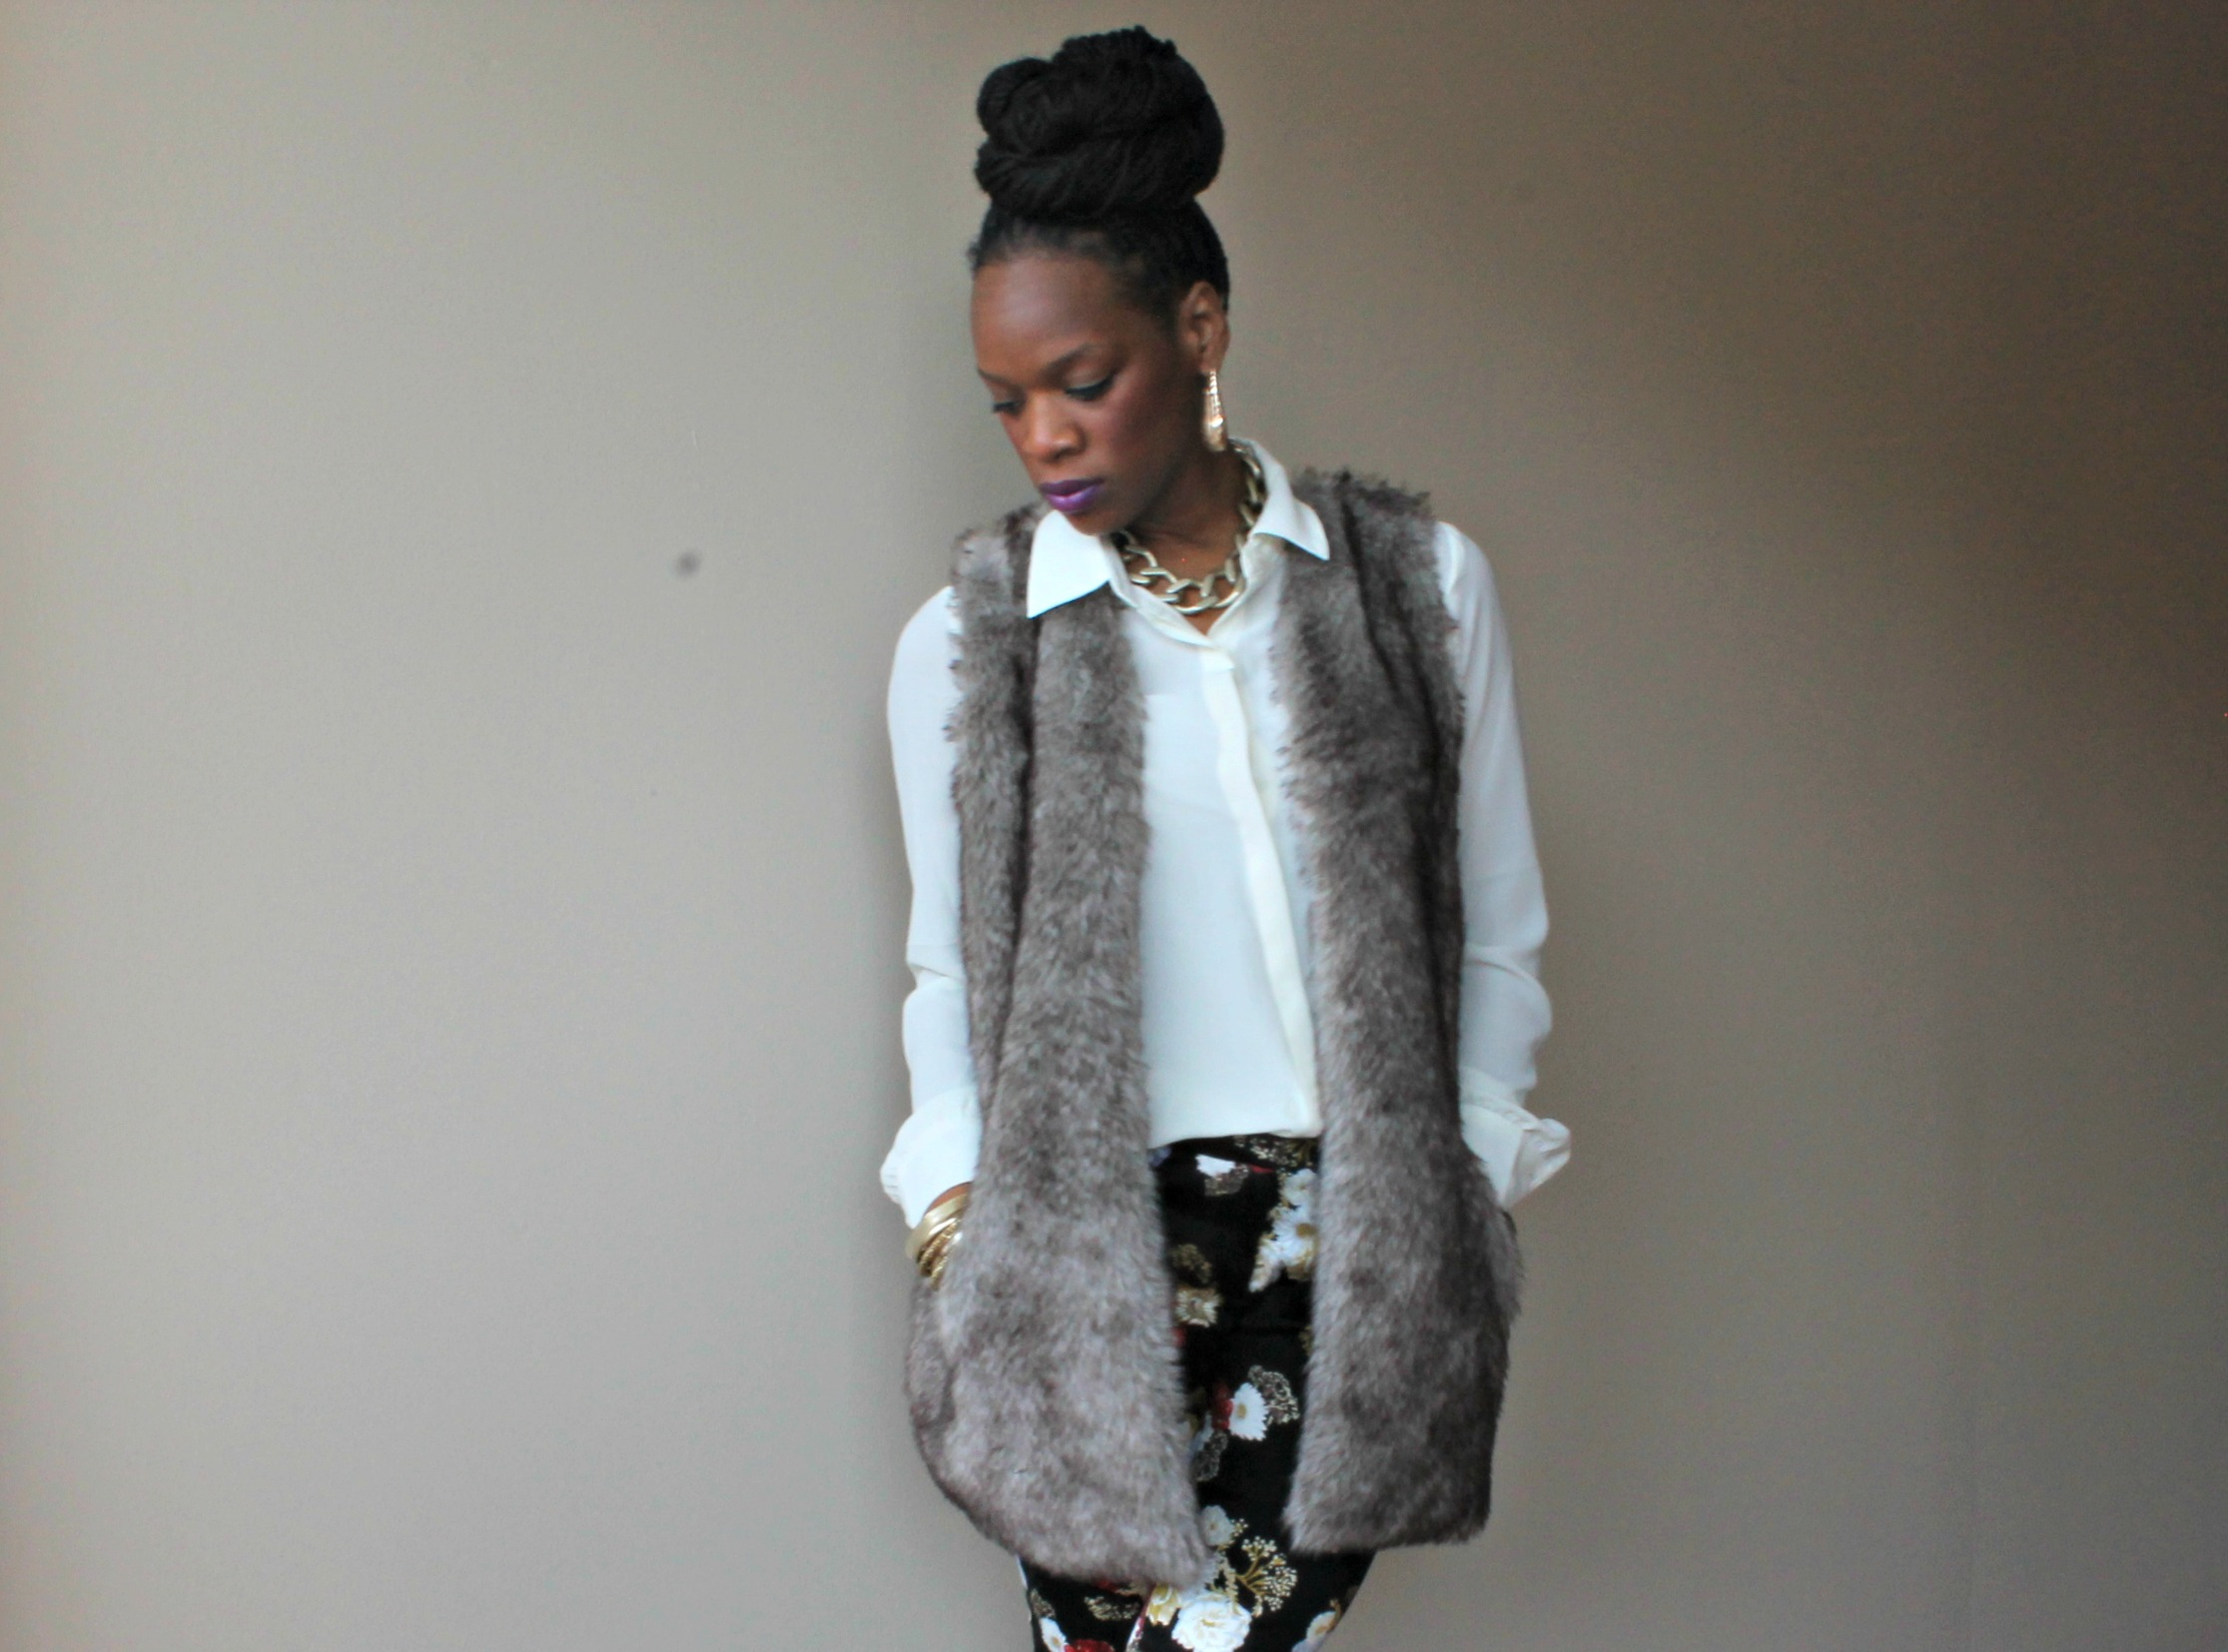 faux-fur-vest-and-floral-pants-outfit-of-the-day-fashion-beauty-and-the-beat-blog